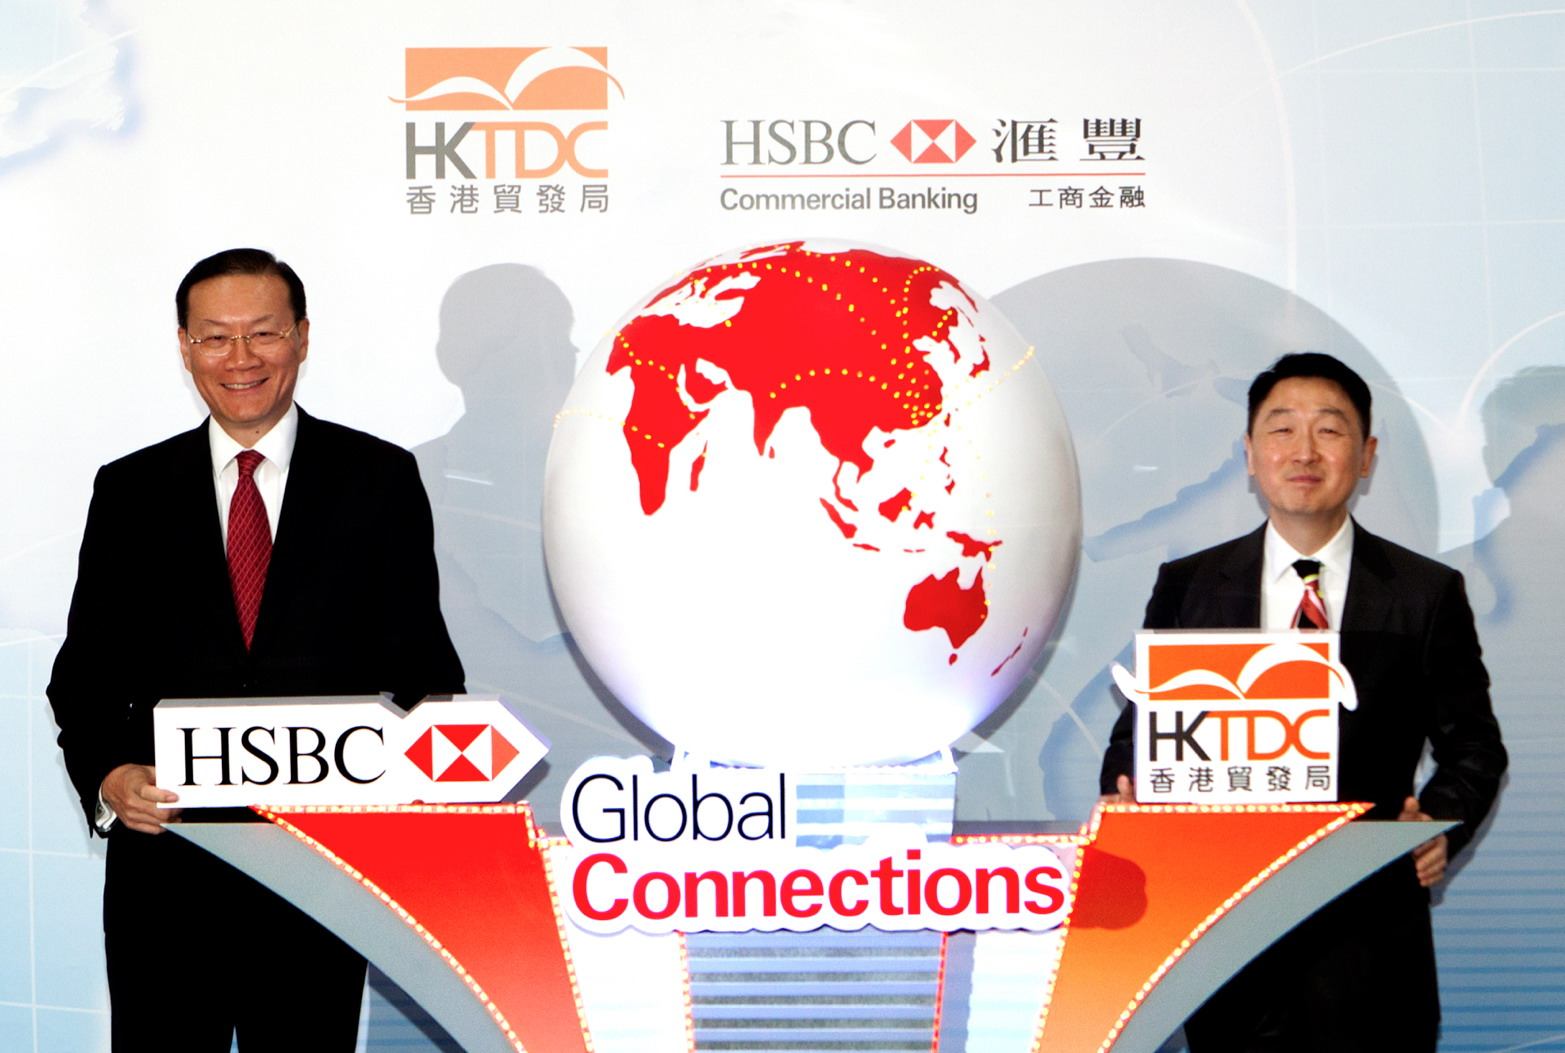 hktdc com - Connecting Businesses to International Opportunities | HKTDC